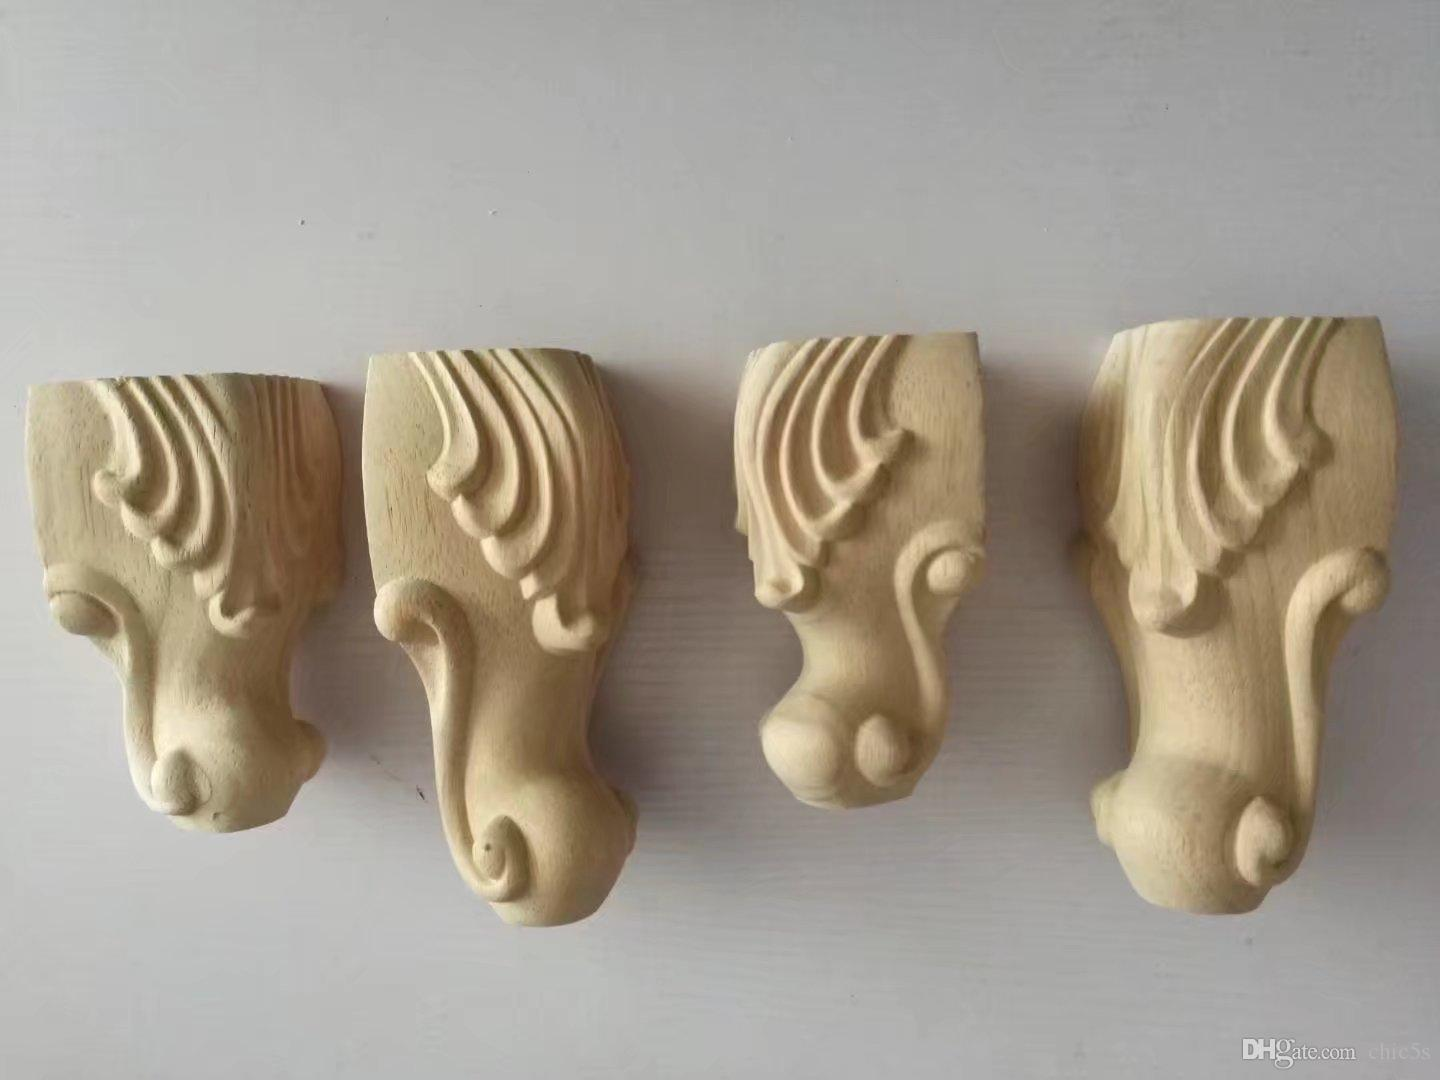 2018 Wood Carving, Solid Wood Furniture, Feet, European Style Carving Feet,  Bath Cabinet Feet, Tables, Chairs, Feet And Sofa Feet.